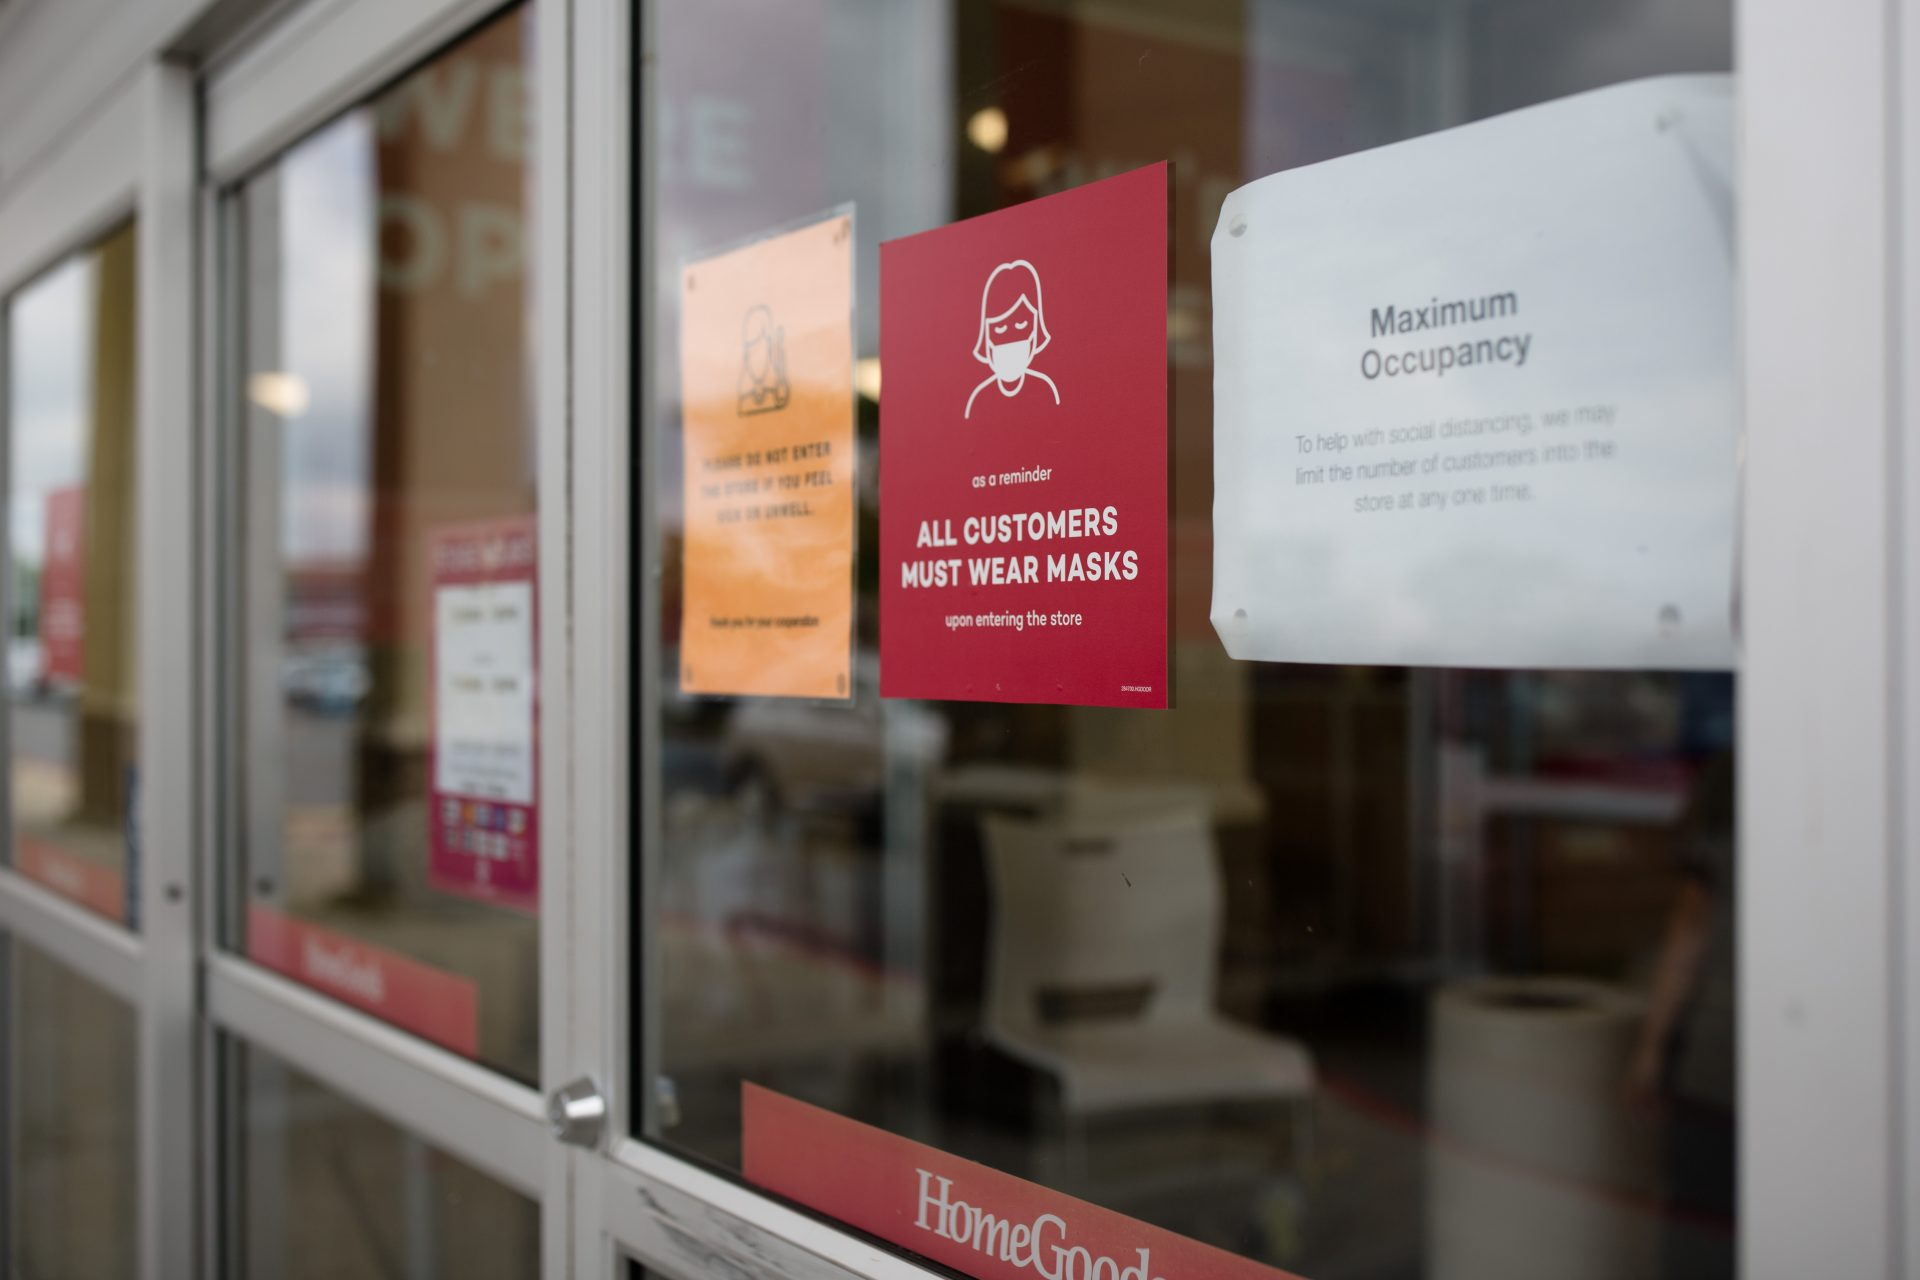 Signs directing customers to wear masks and stating occupancy limits are posted on the door of Home Goods store on Jonestown Road in Harrisburg on Friday, June 19, 2020.